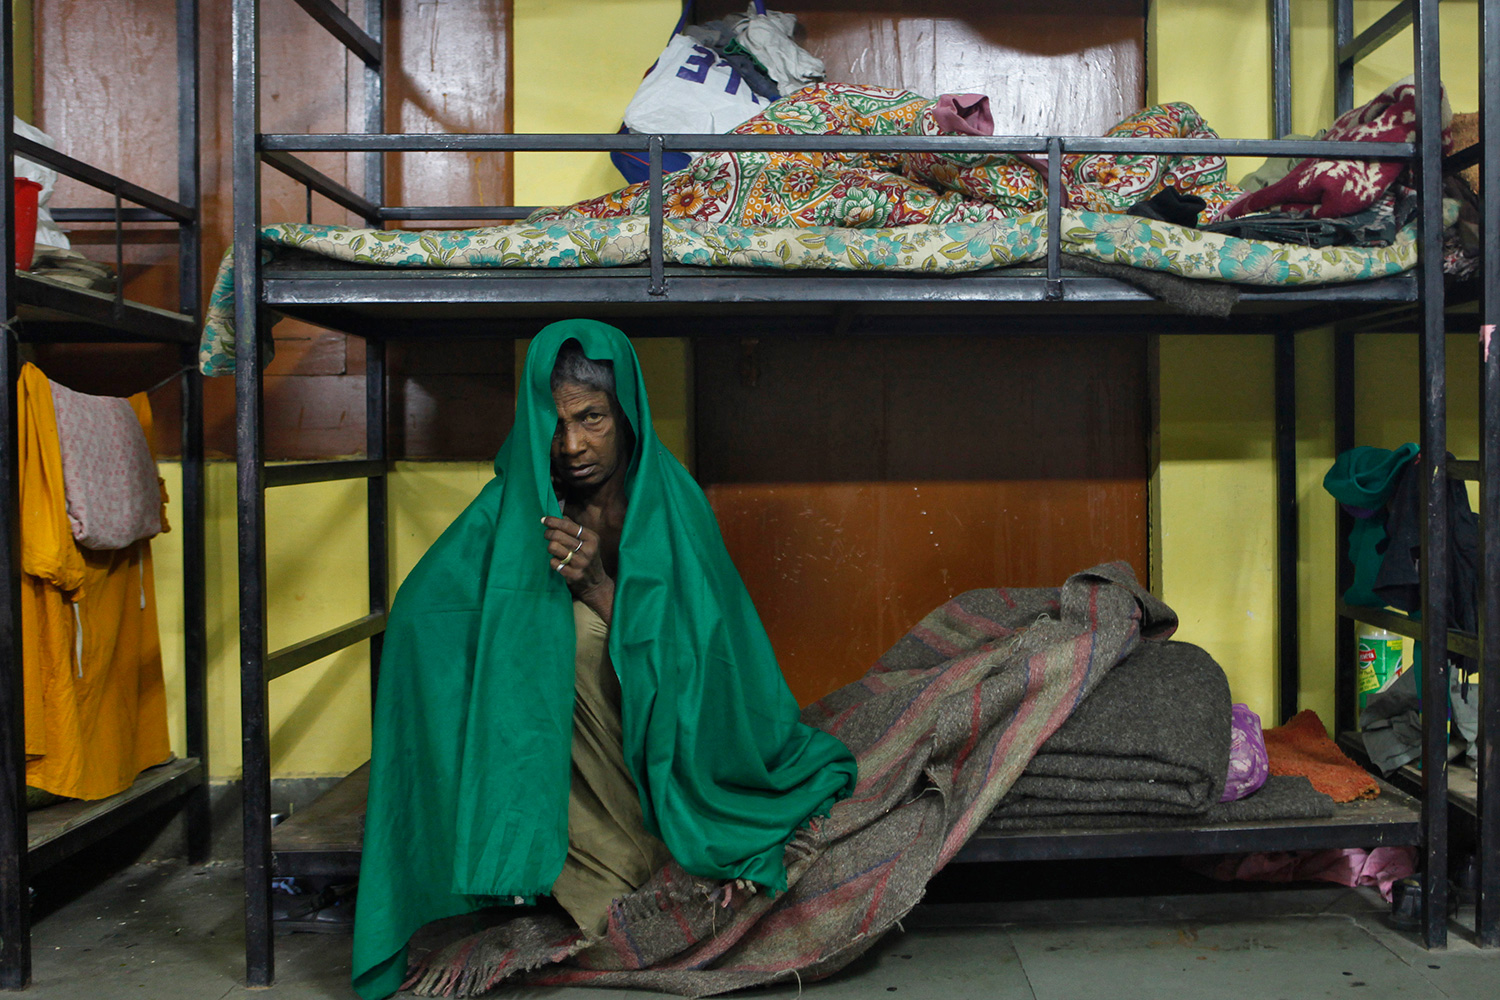 Picture shows a woman sitting on a bunk while wrapped in a bright green blanket.